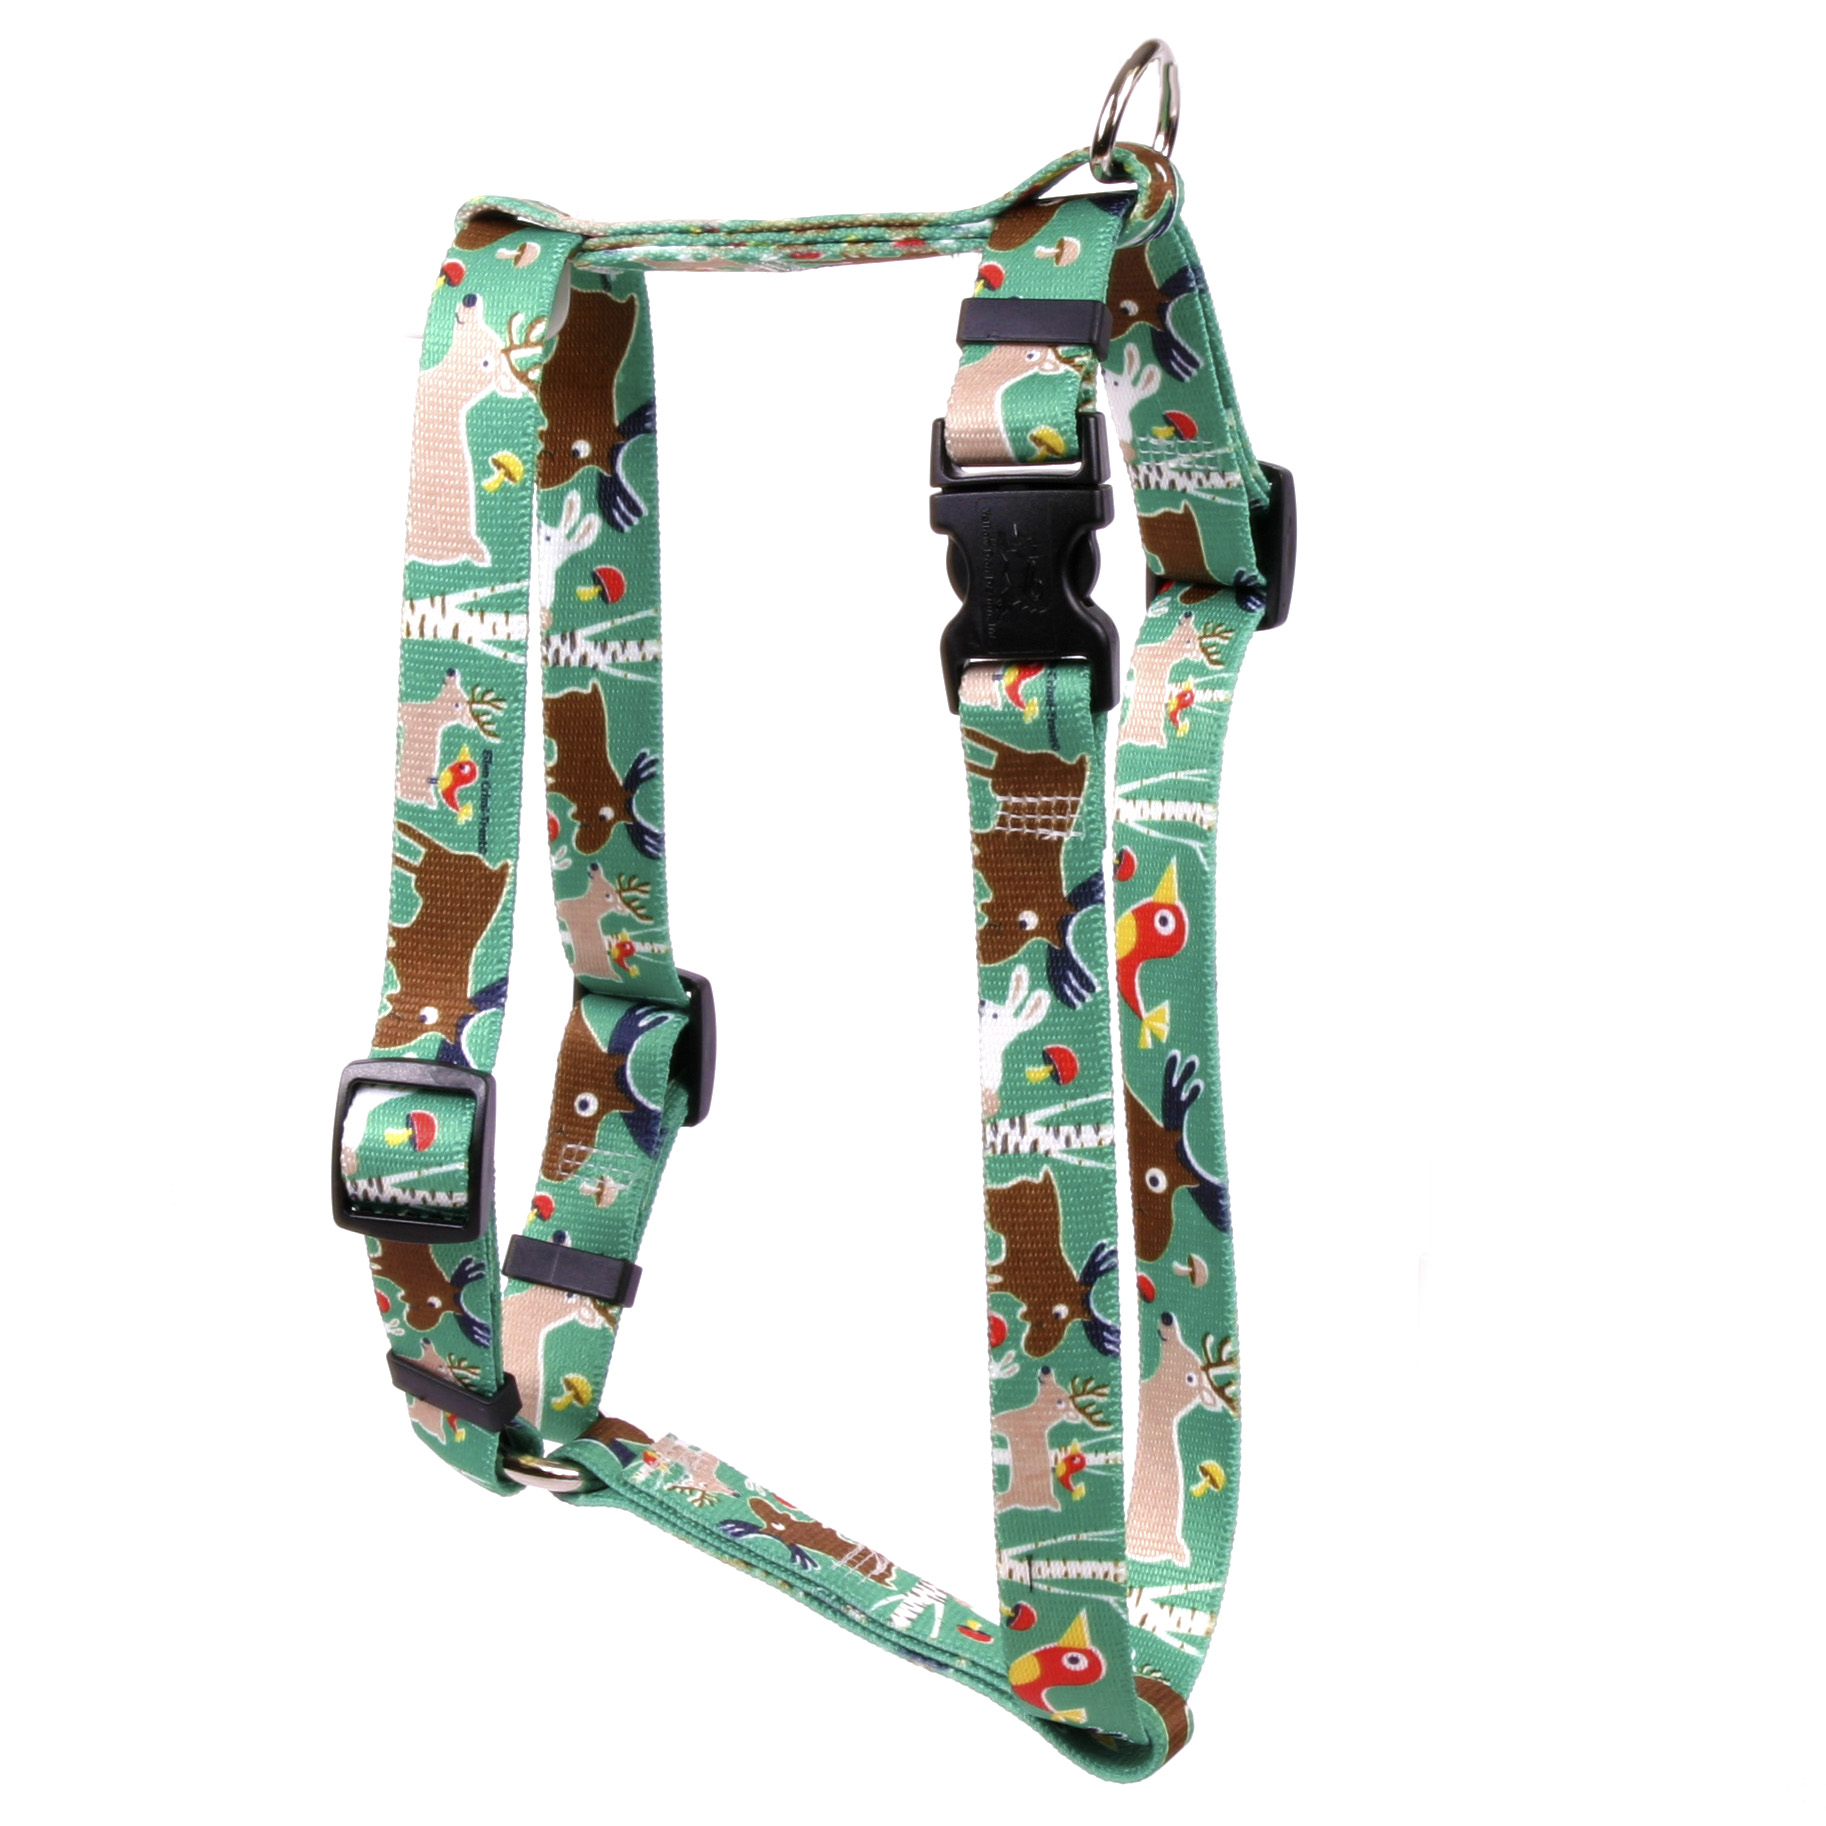 Woodland Friends Roman H Harness